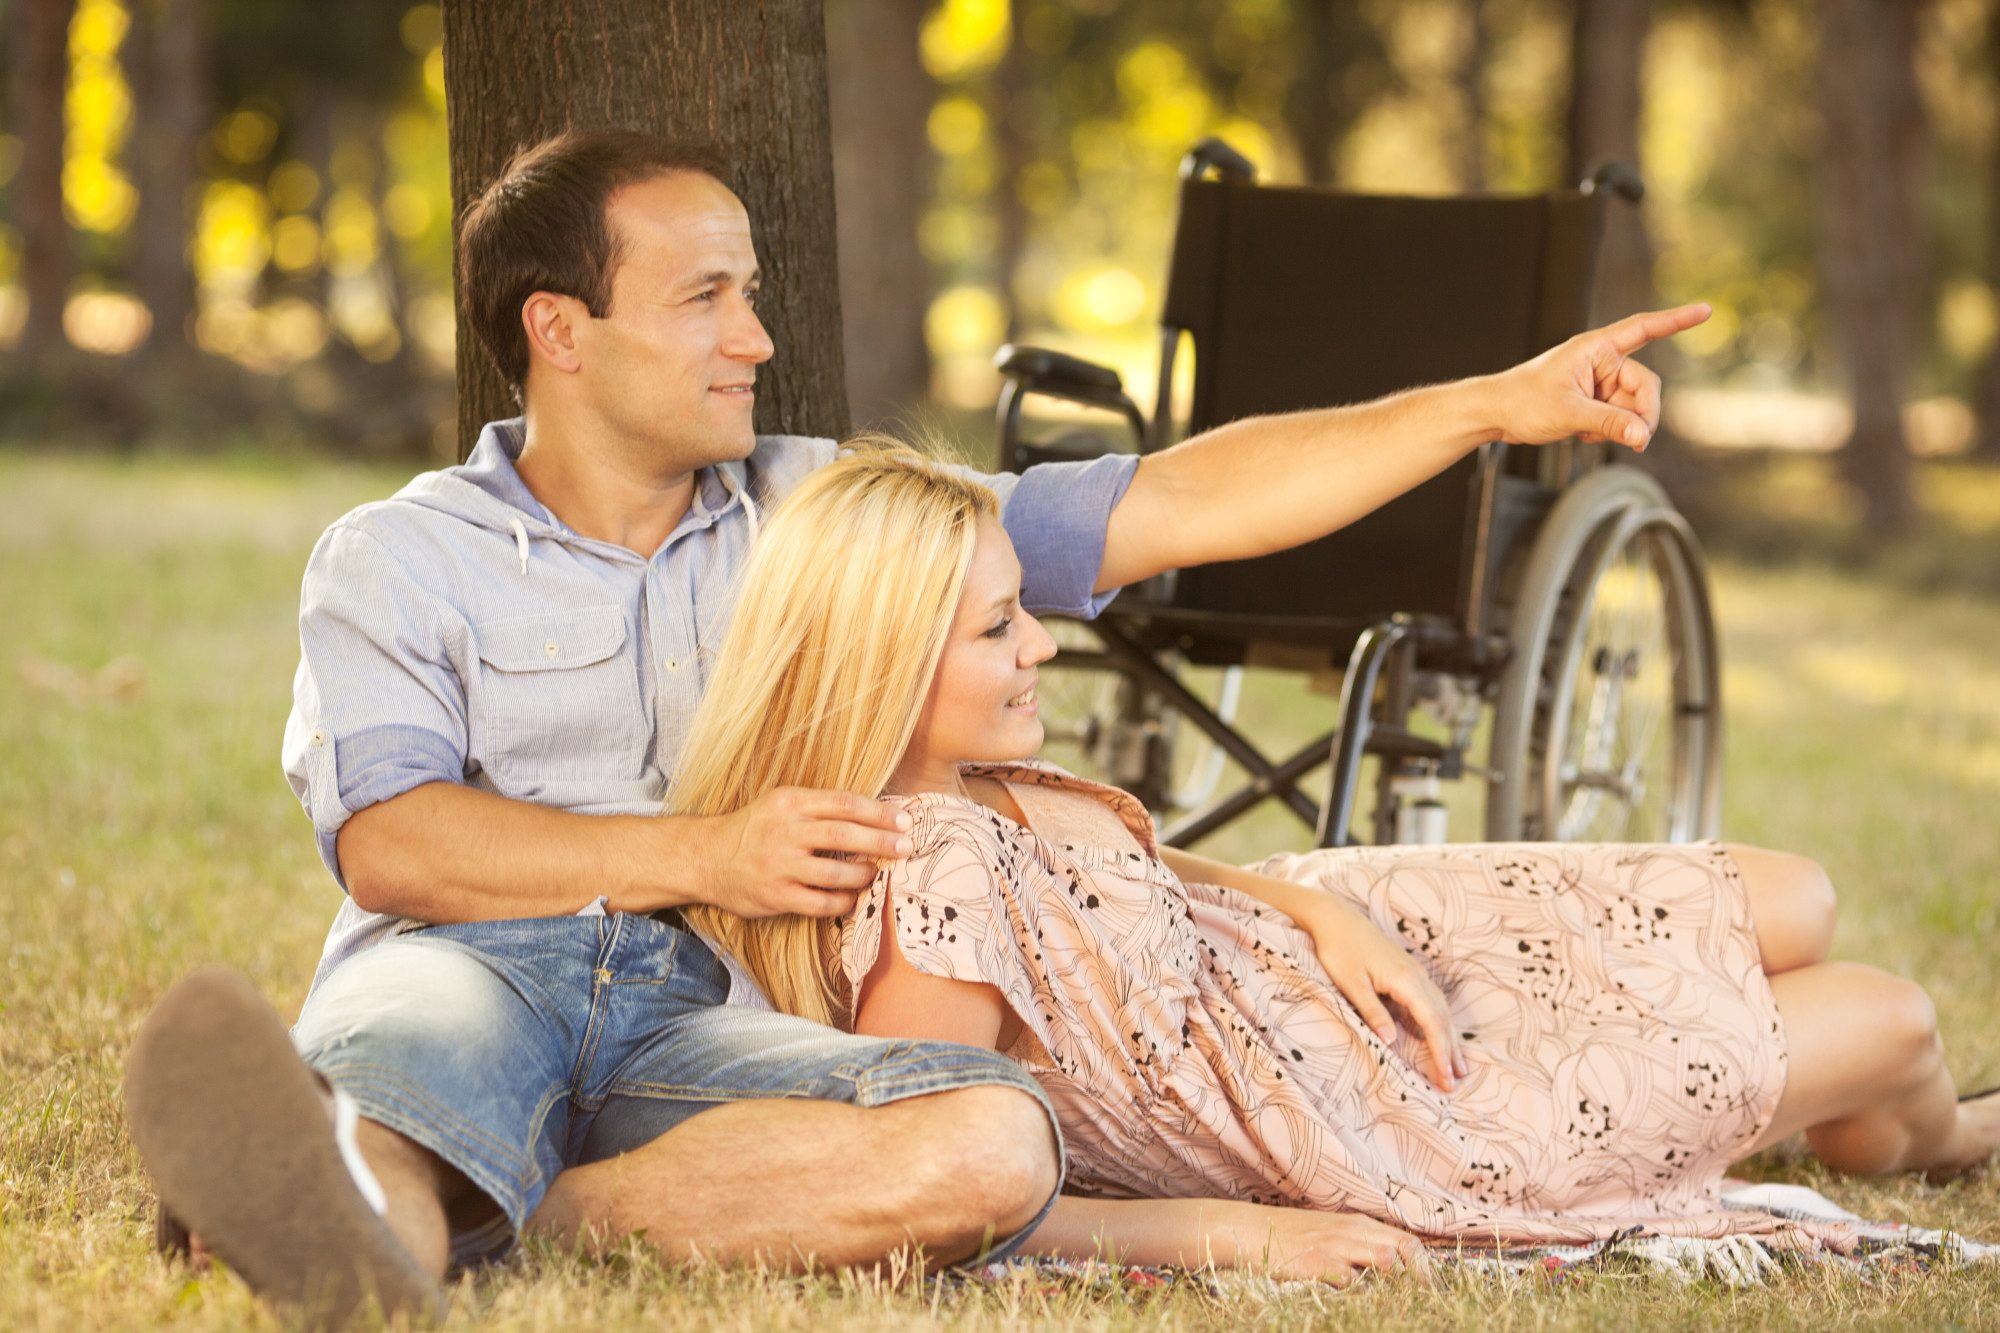 learning disability online dating Reviewed for you disabled dating the online dating portion whether you are wheelchair bound or suffer from a learning disability, disabled dating sites.